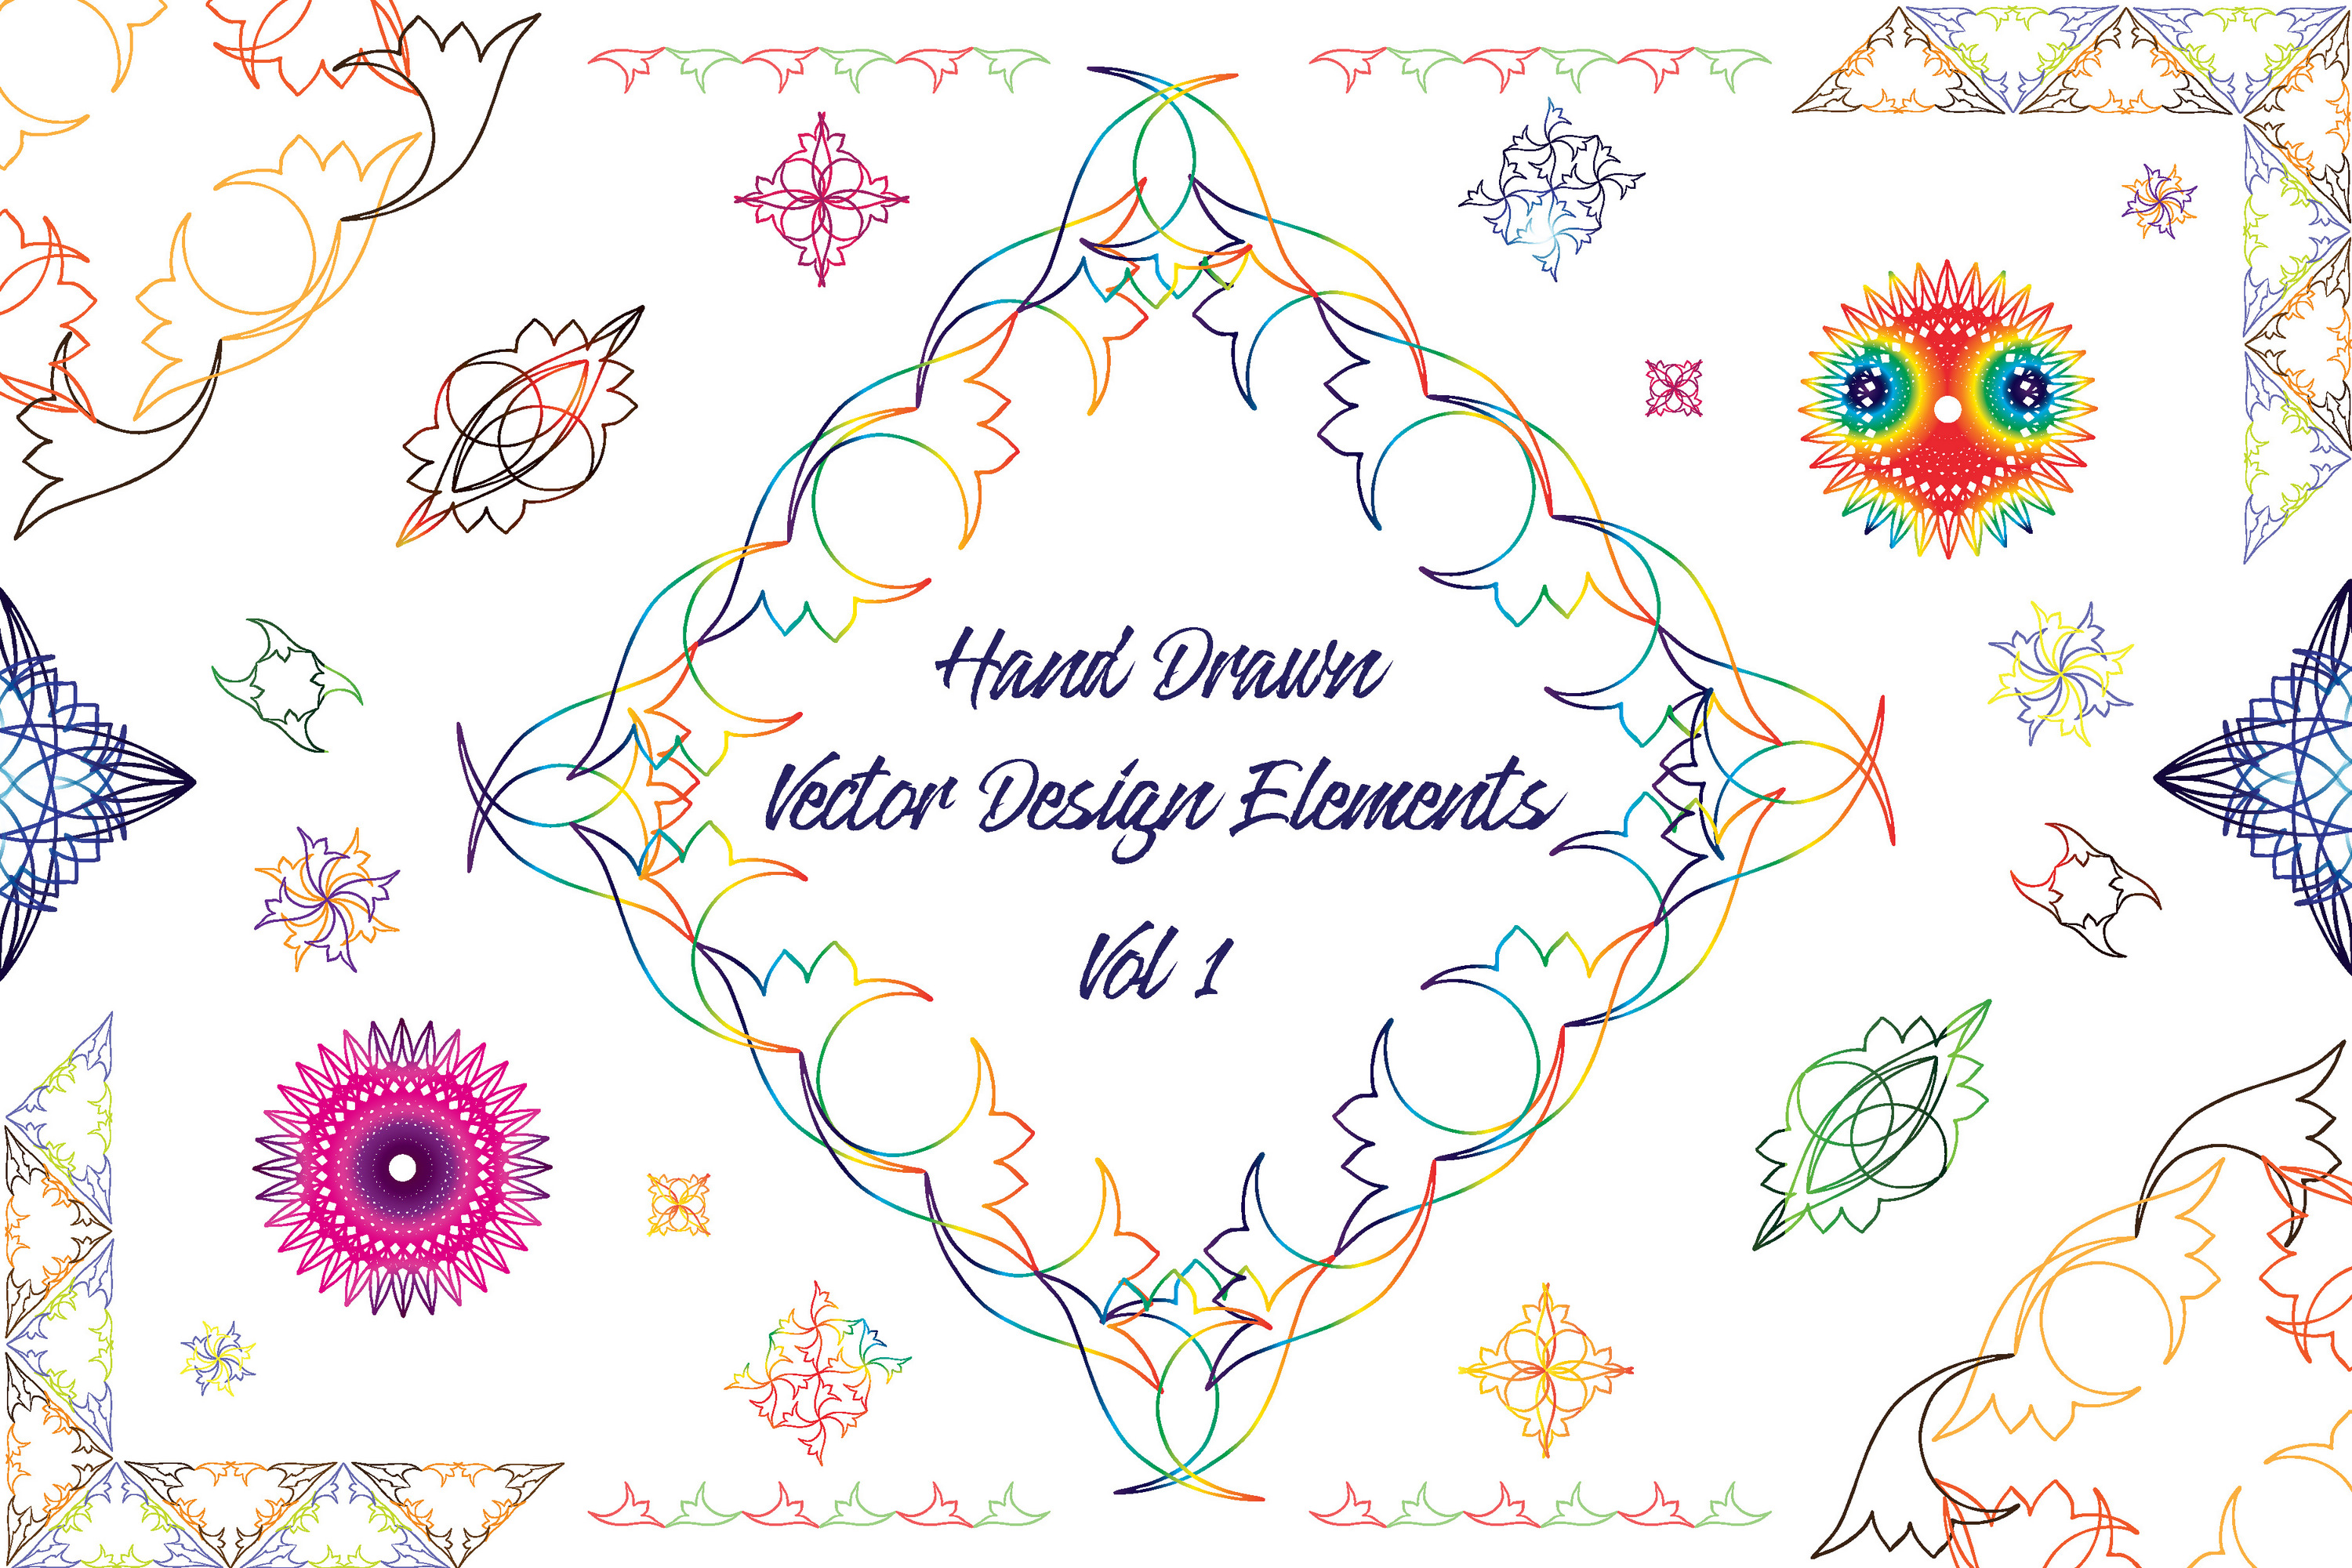 Hand Drawn Vector Design Elements_Volume 1 example image 1